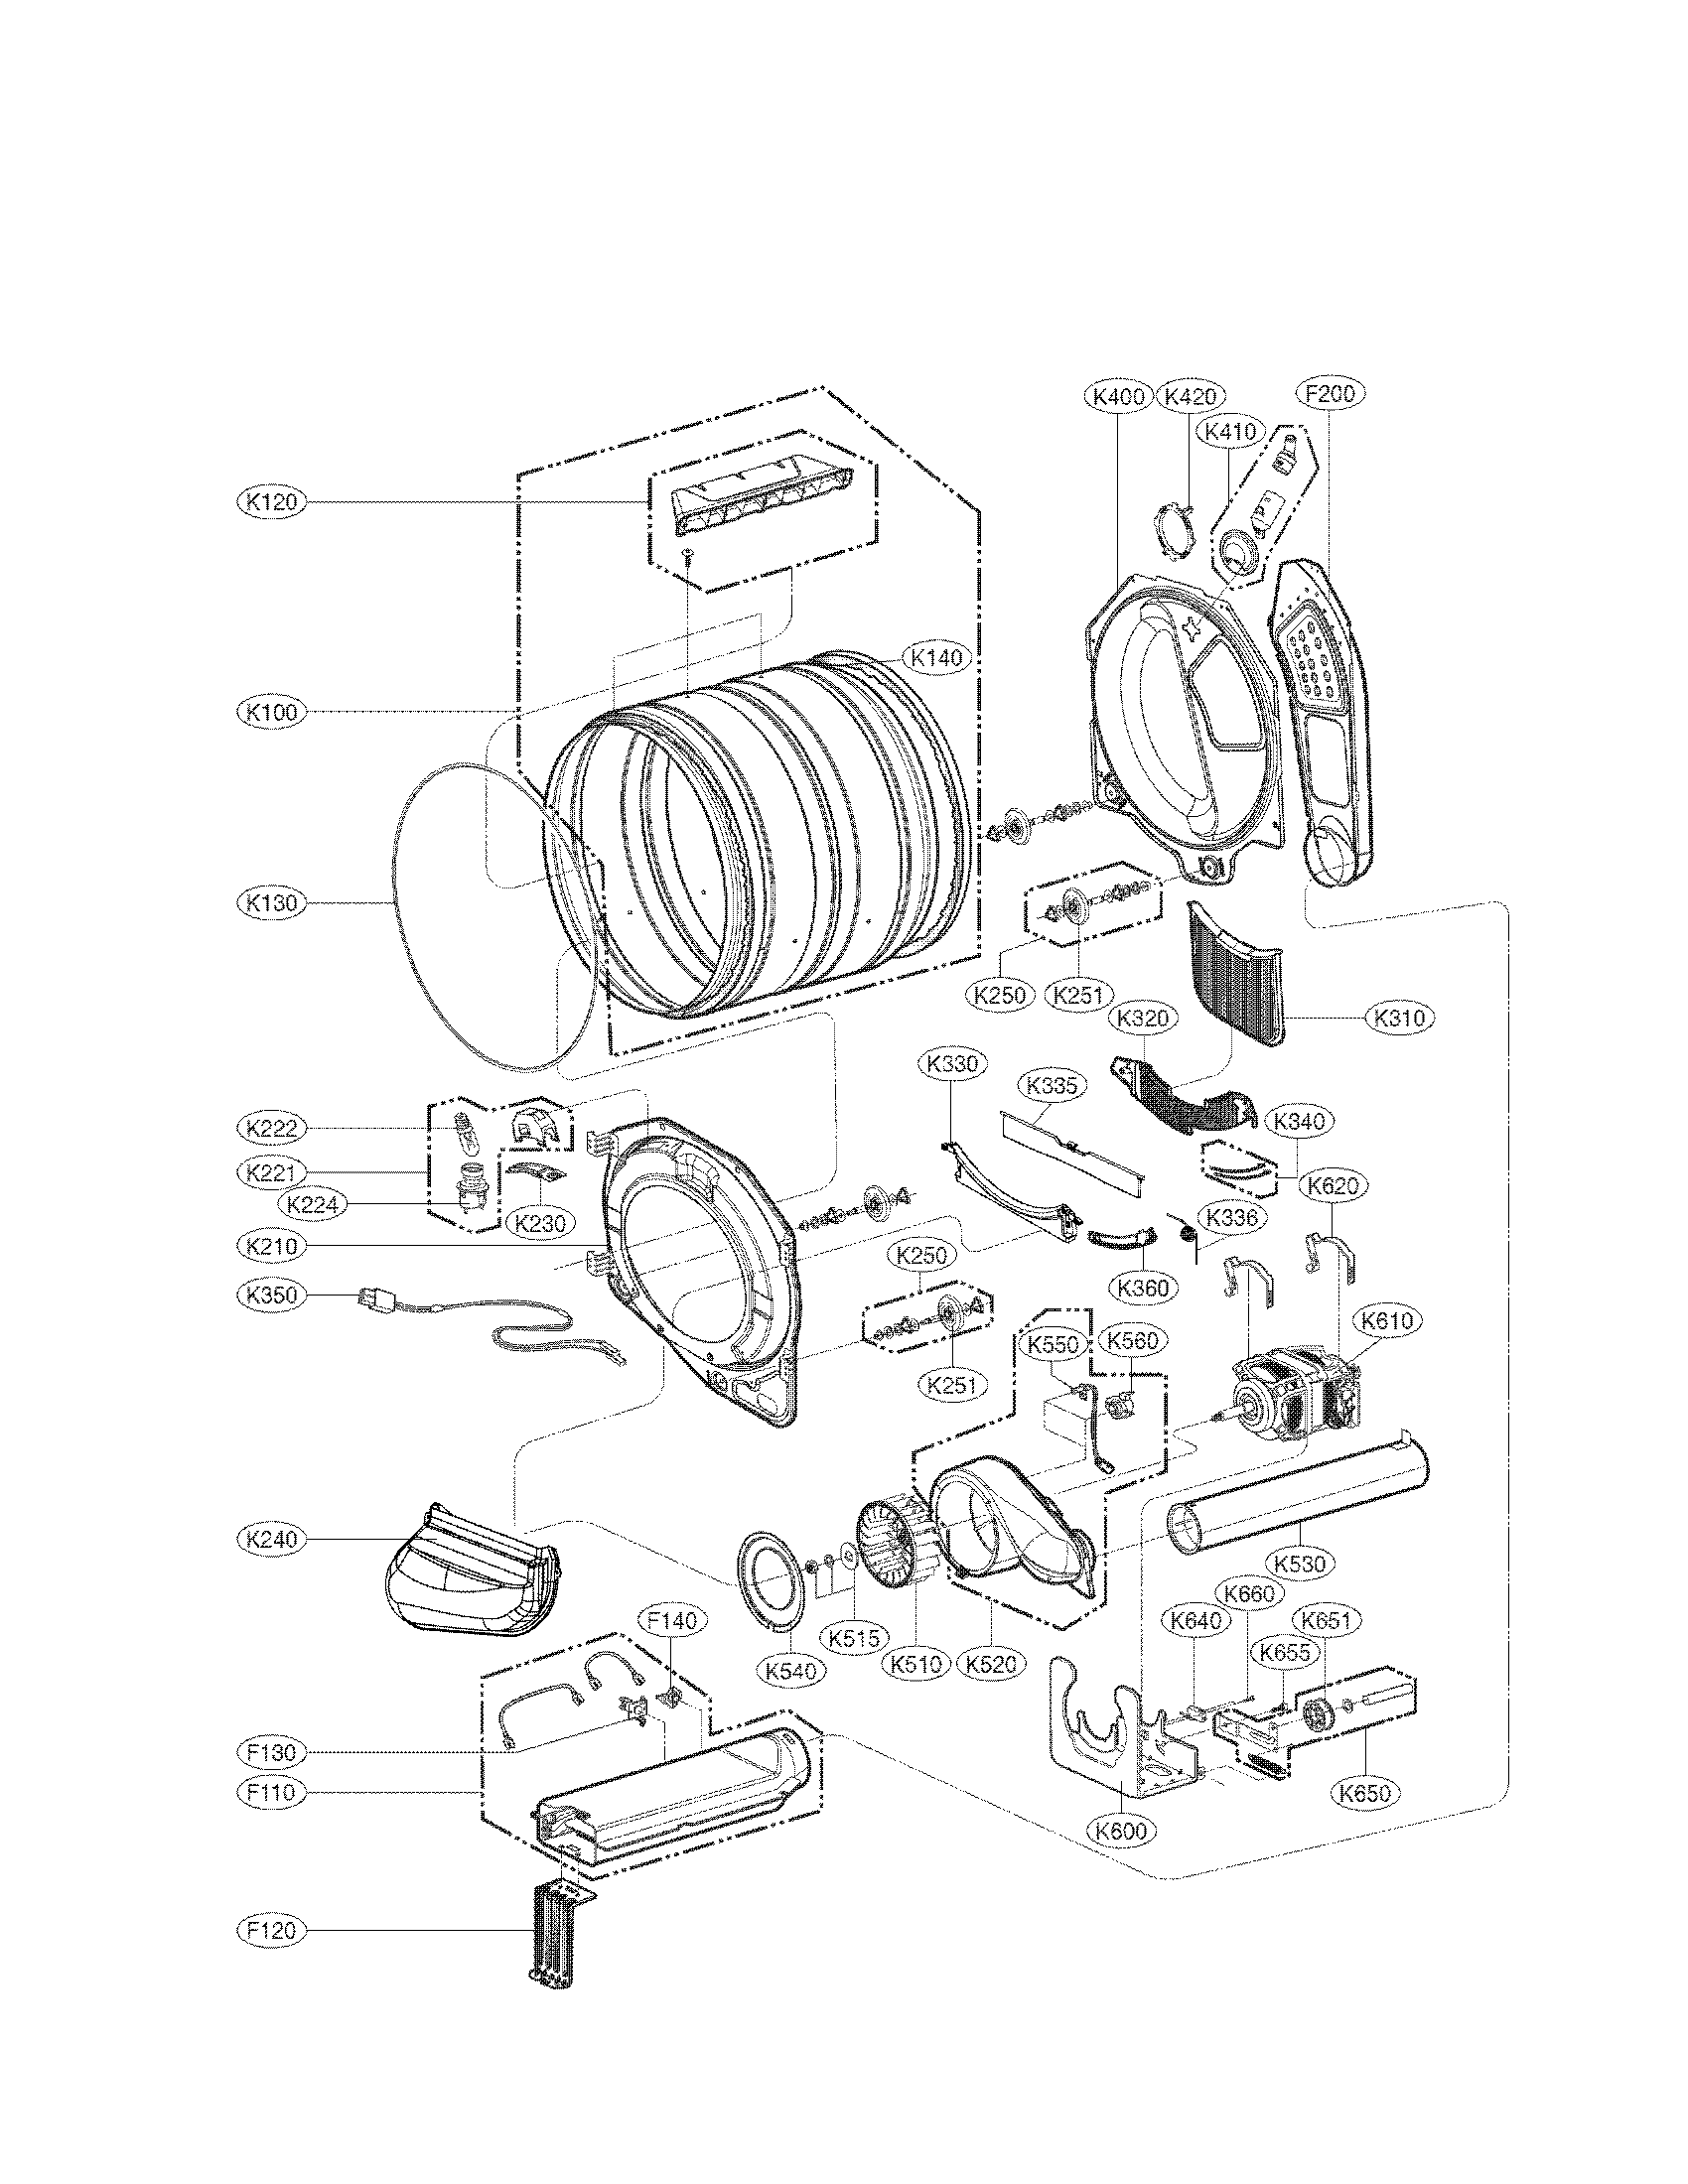 LG DLEX3470V drum and motor assembly parts diagram